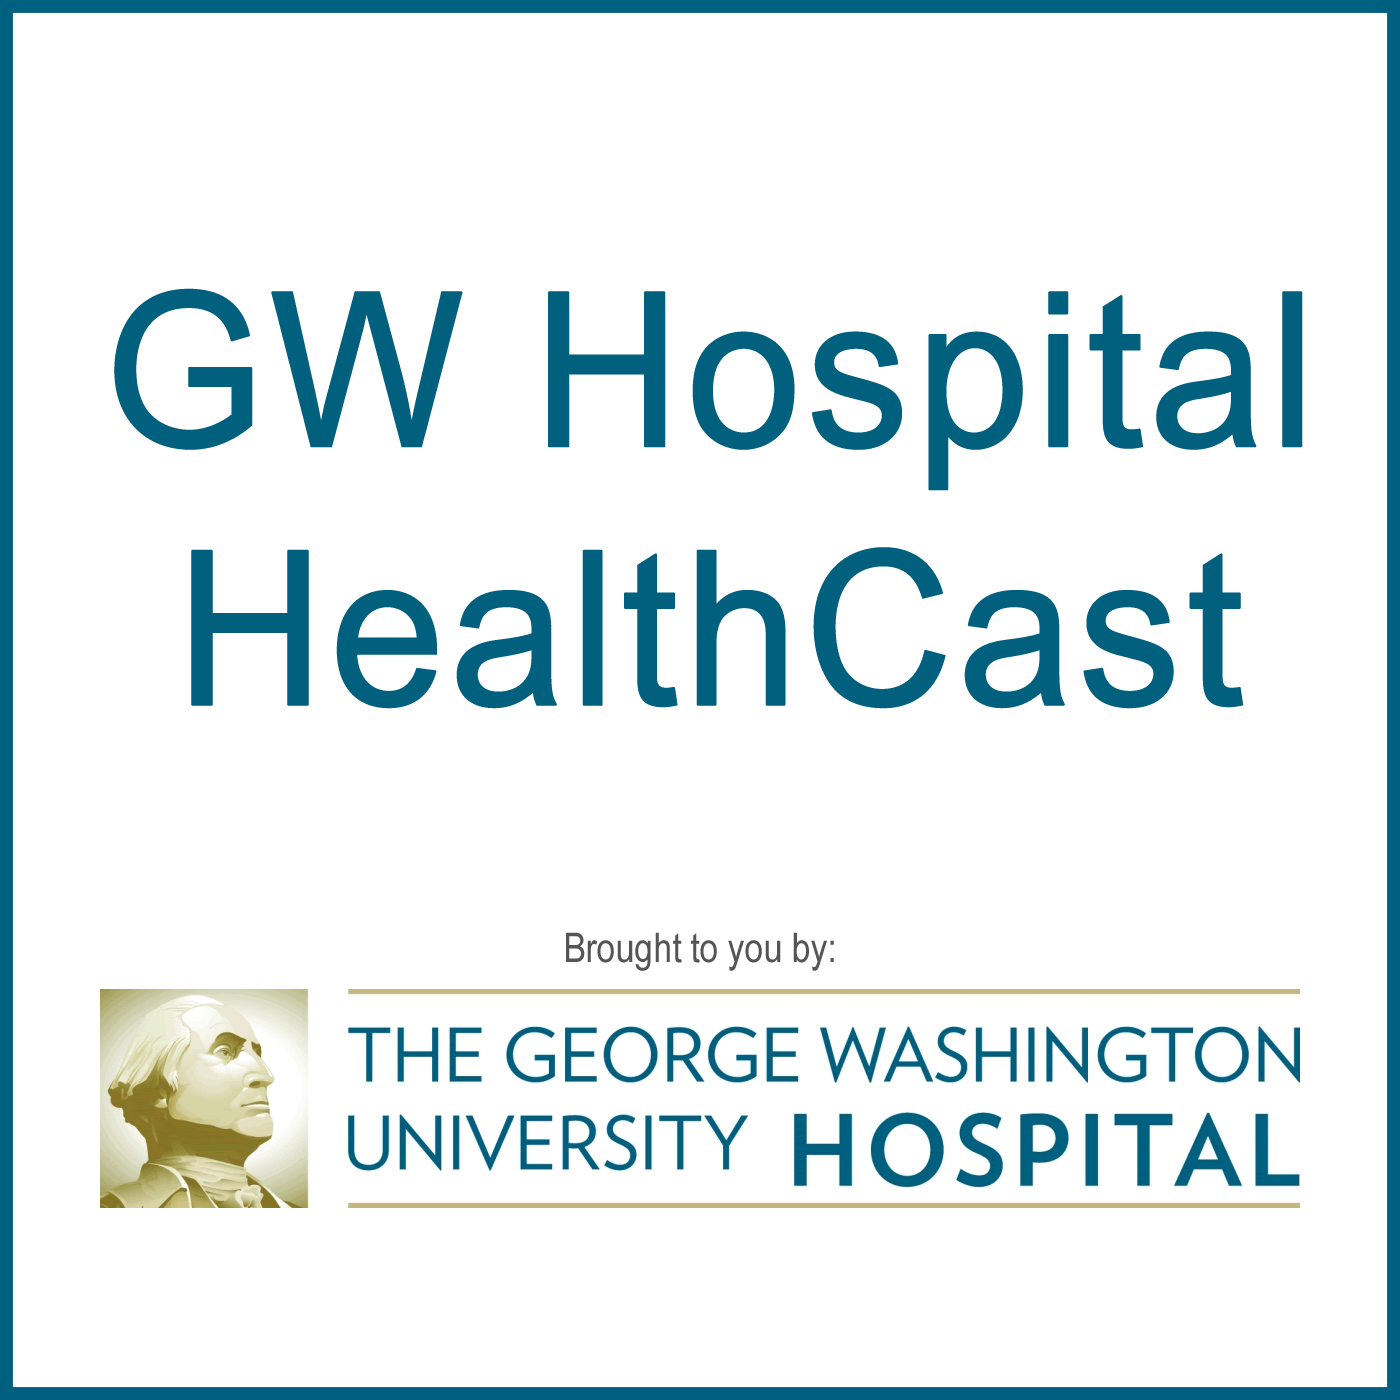 The George Washington University Hospital - GW Hospital